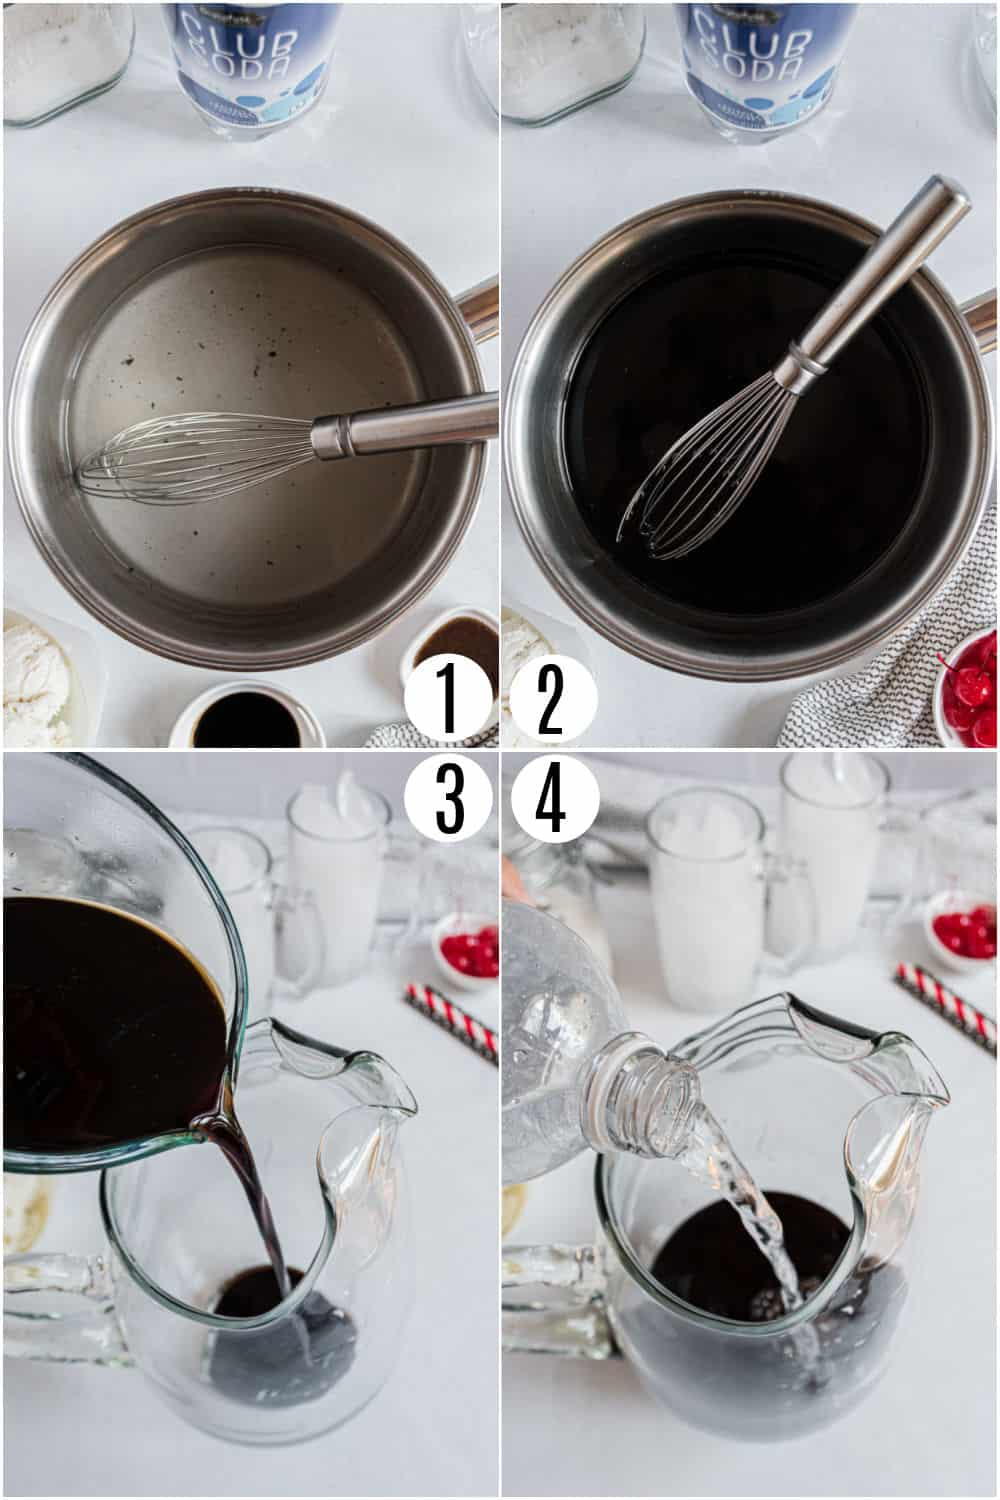 Step by step photo instructions showing how to make homemade root beer.